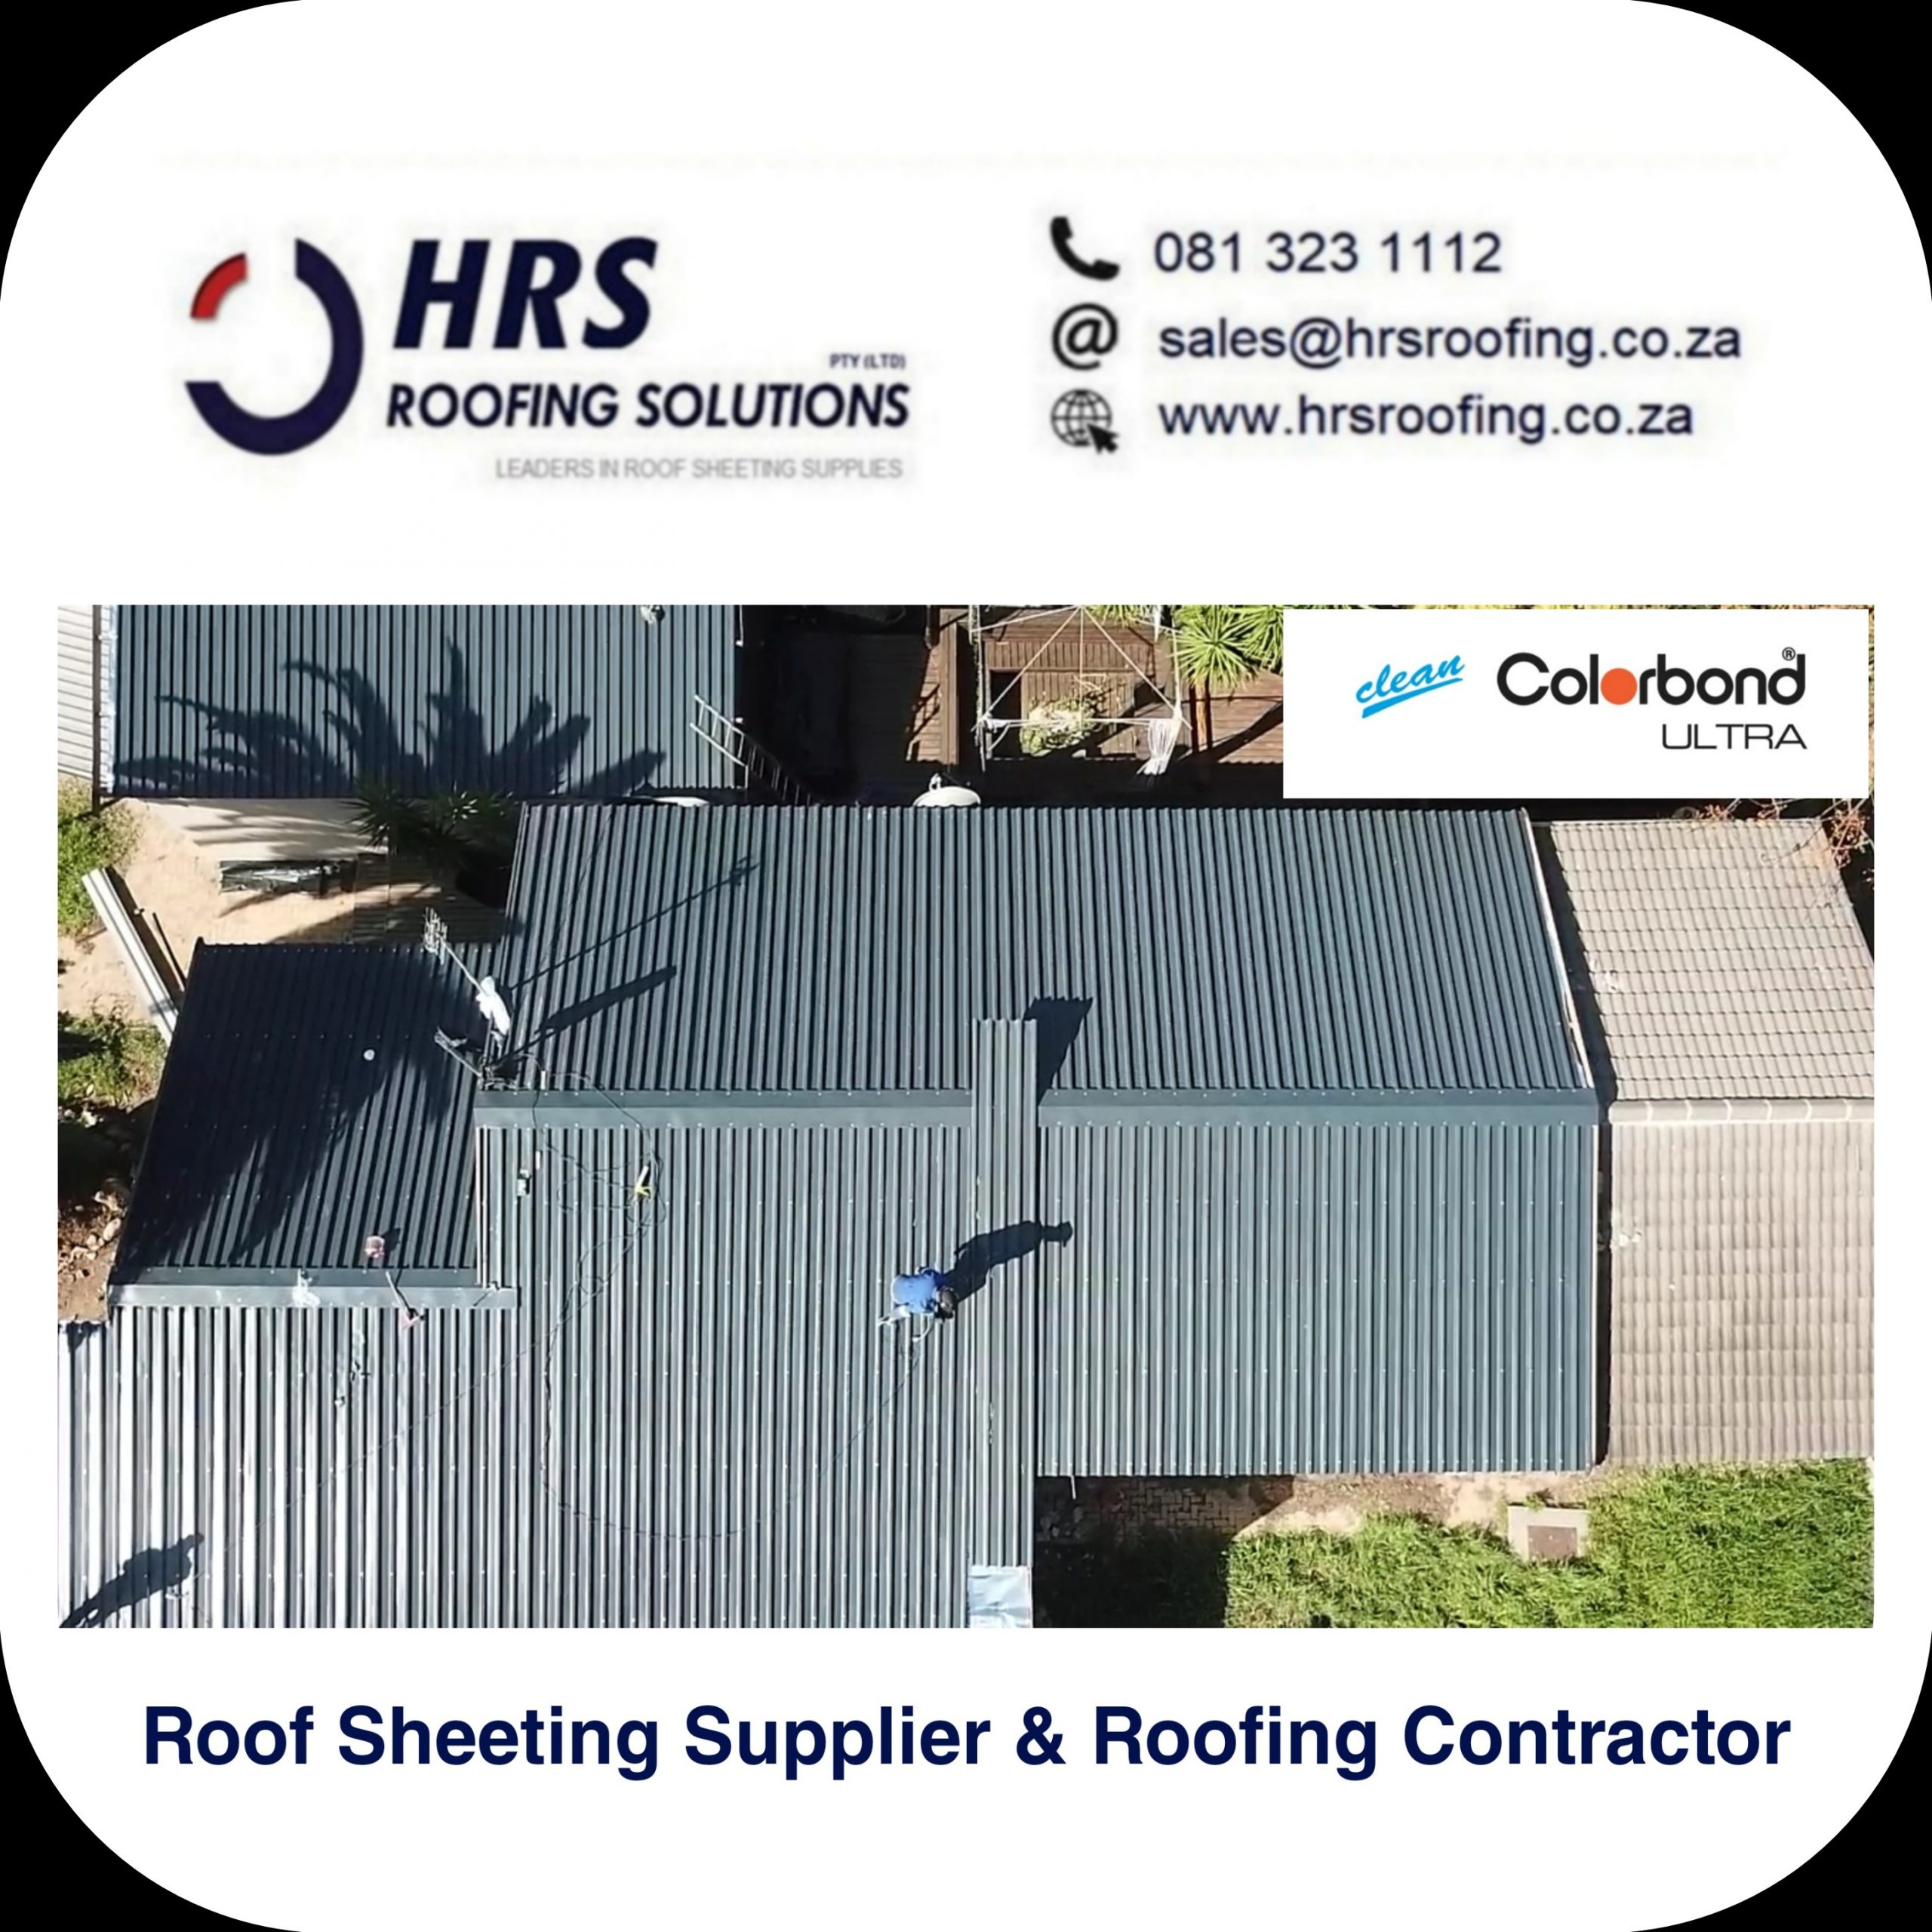 bullnose and cranked roof sheeting cape Town Zincalume Colorbond hrs roofing j scaled - Roofing Gallery